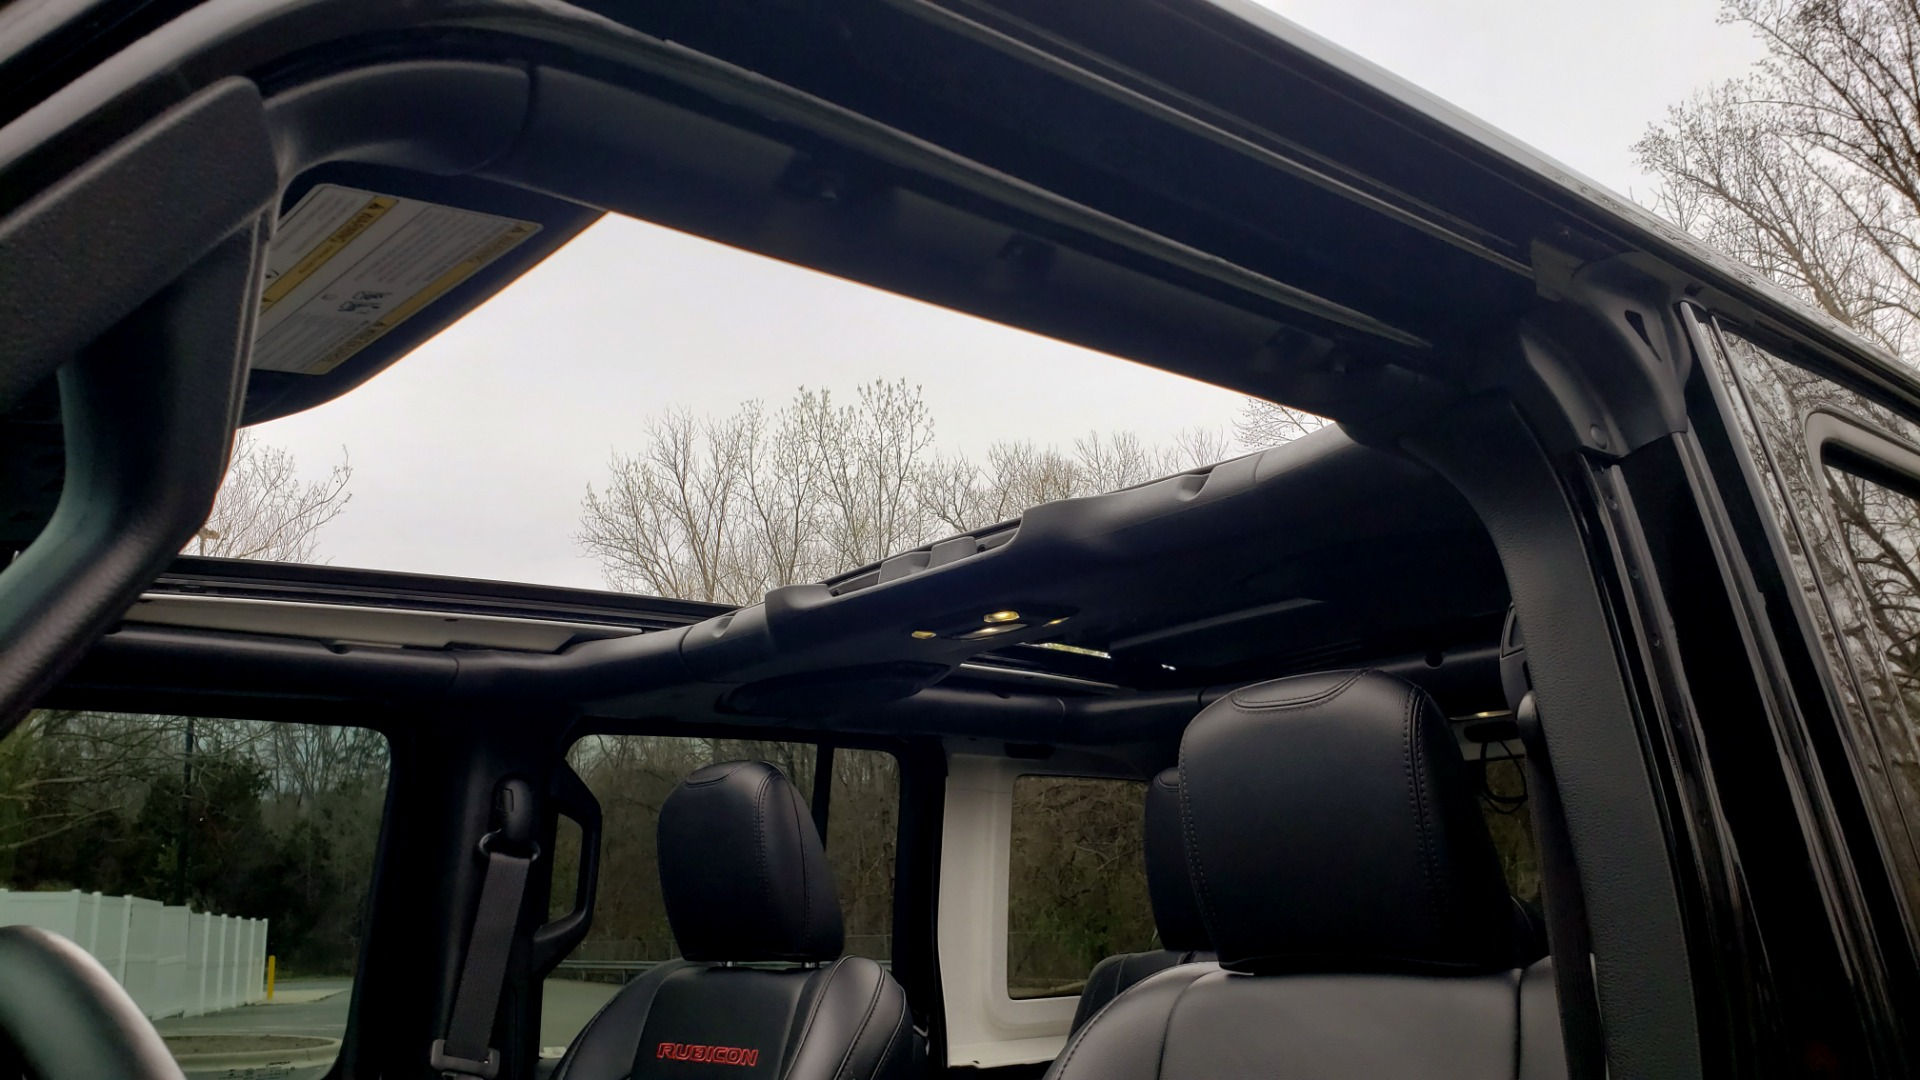 Used 2019 Jeep WRANGLER UNLIMITED RUBICON 4WD / V6 / 8-SPD AUTO / NAV / PWR TOP / REARVIEW for sale Sold at Formula Imports in Charlotte NC 28227 81